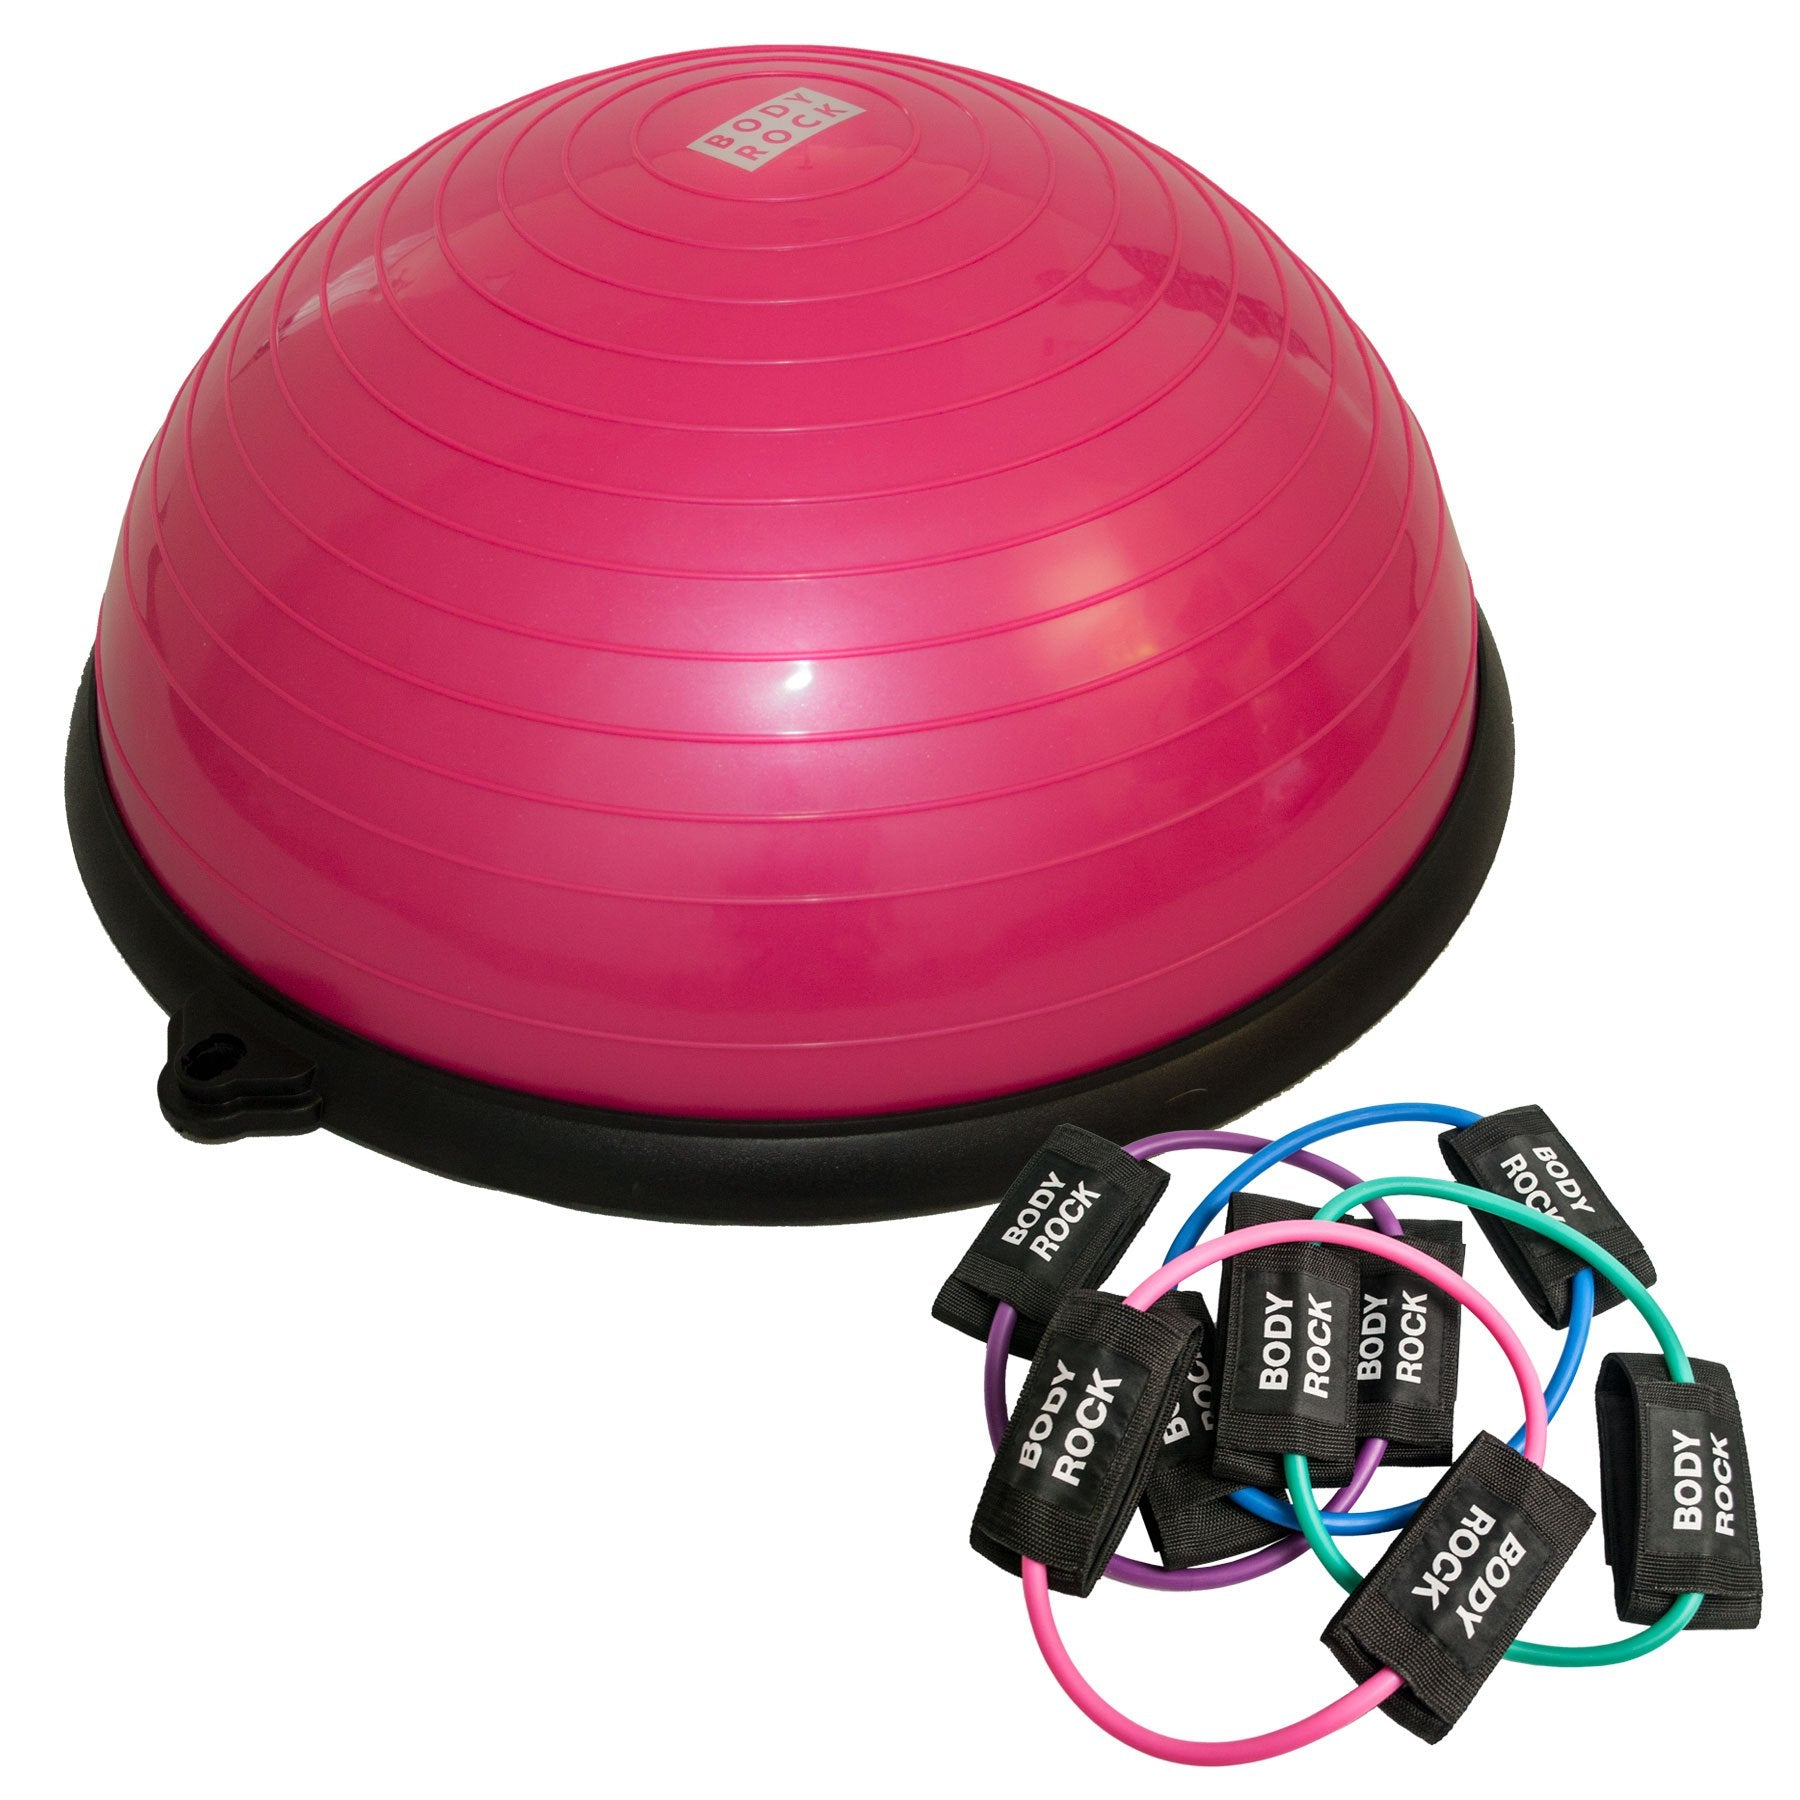 Image of BodyRock Balance Trainer & Booty Band Bundle Pink by BodyRock.Tv